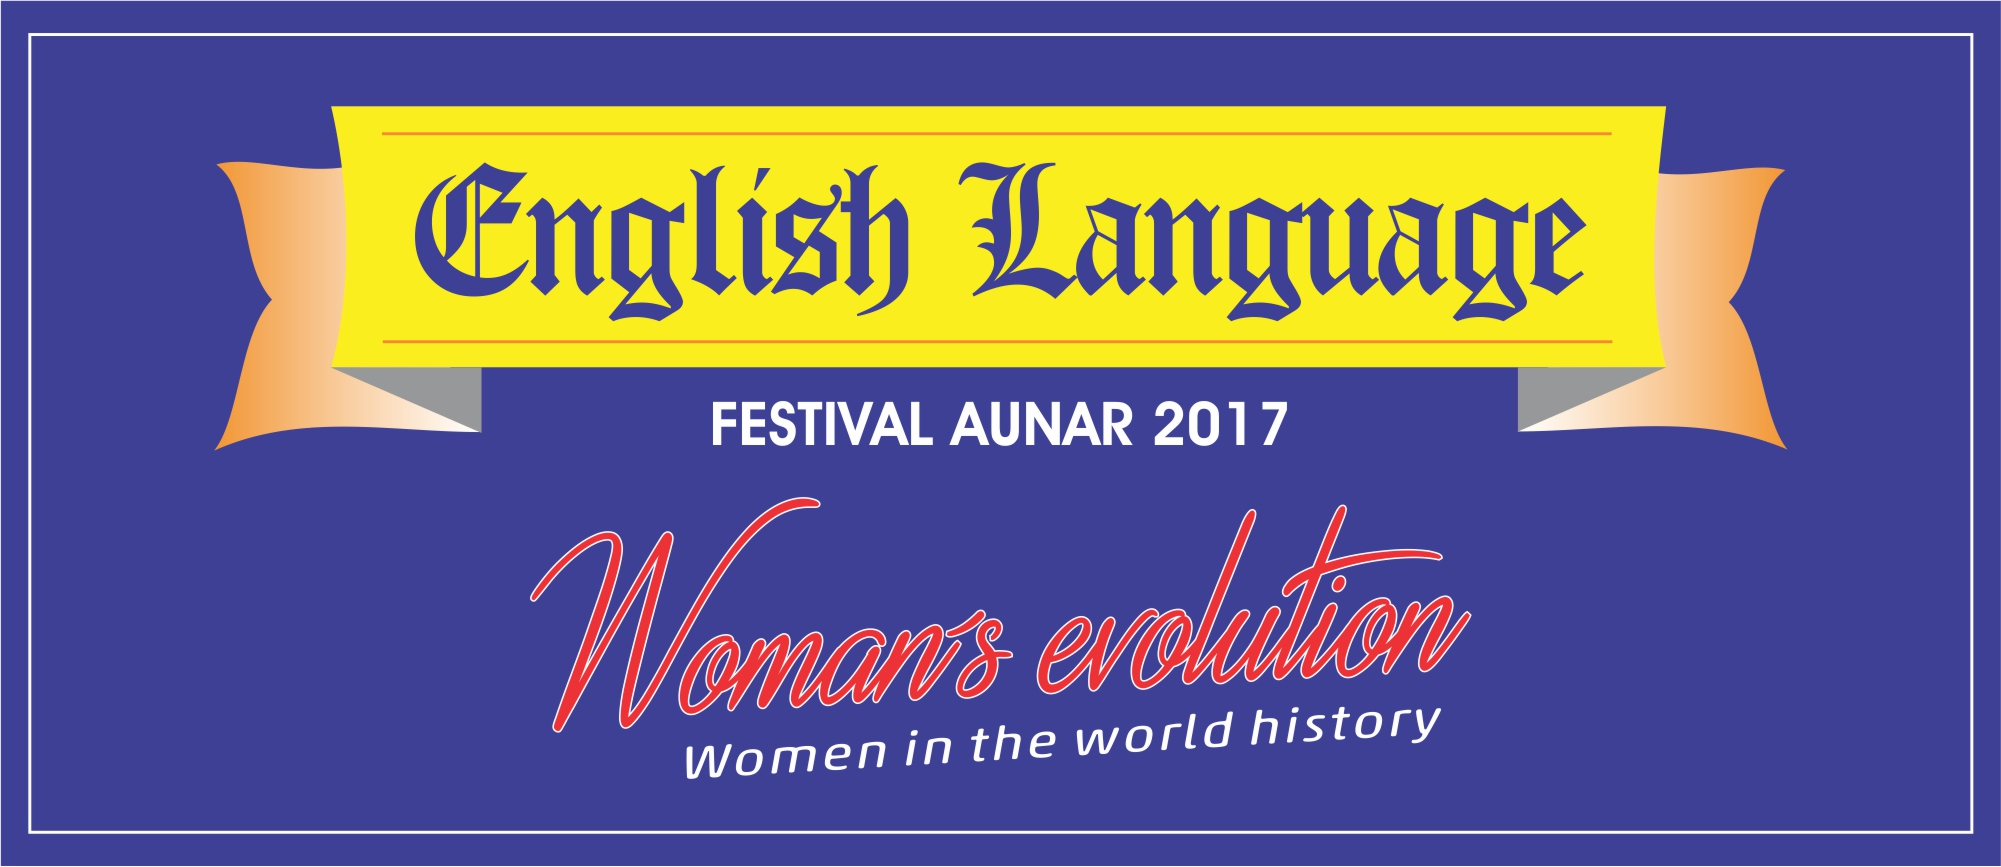 ENGLISH LANGUAGE FESTIVAL AUNAR 2017